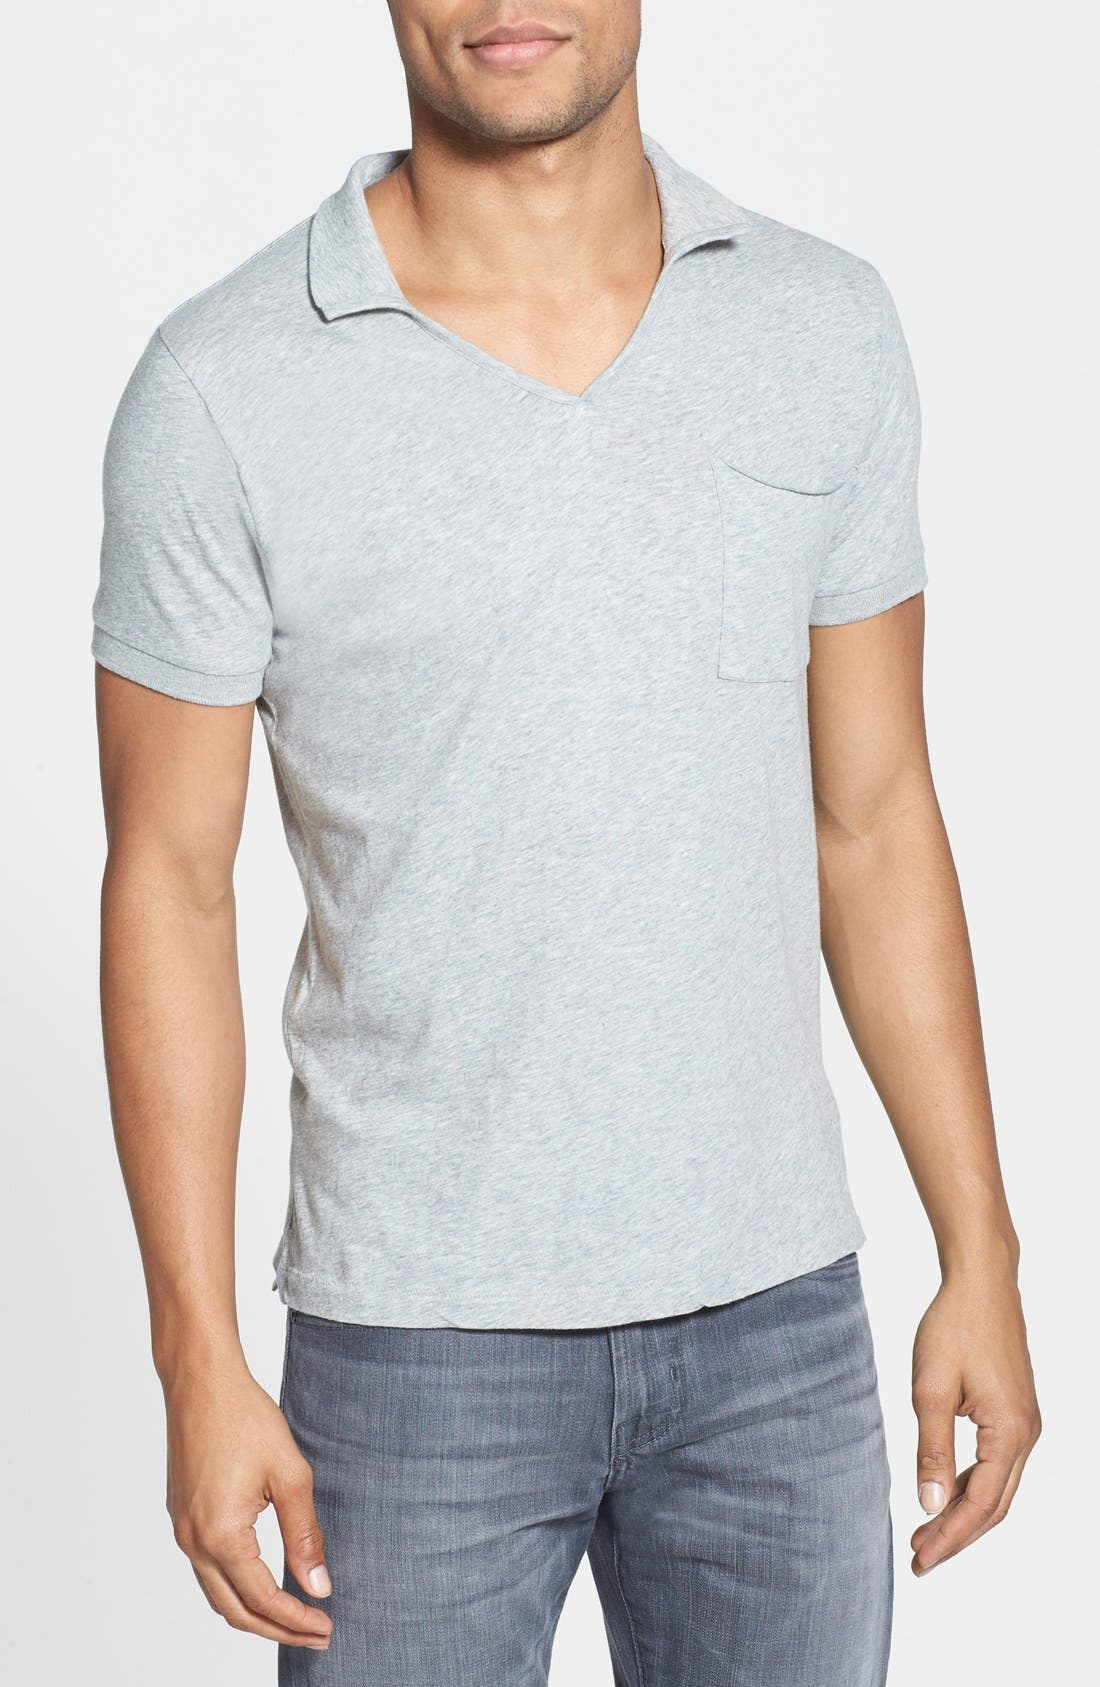 Main Image - French Connection 'Lunar' Slim Fit V-Neck Jersey Polo Shirt